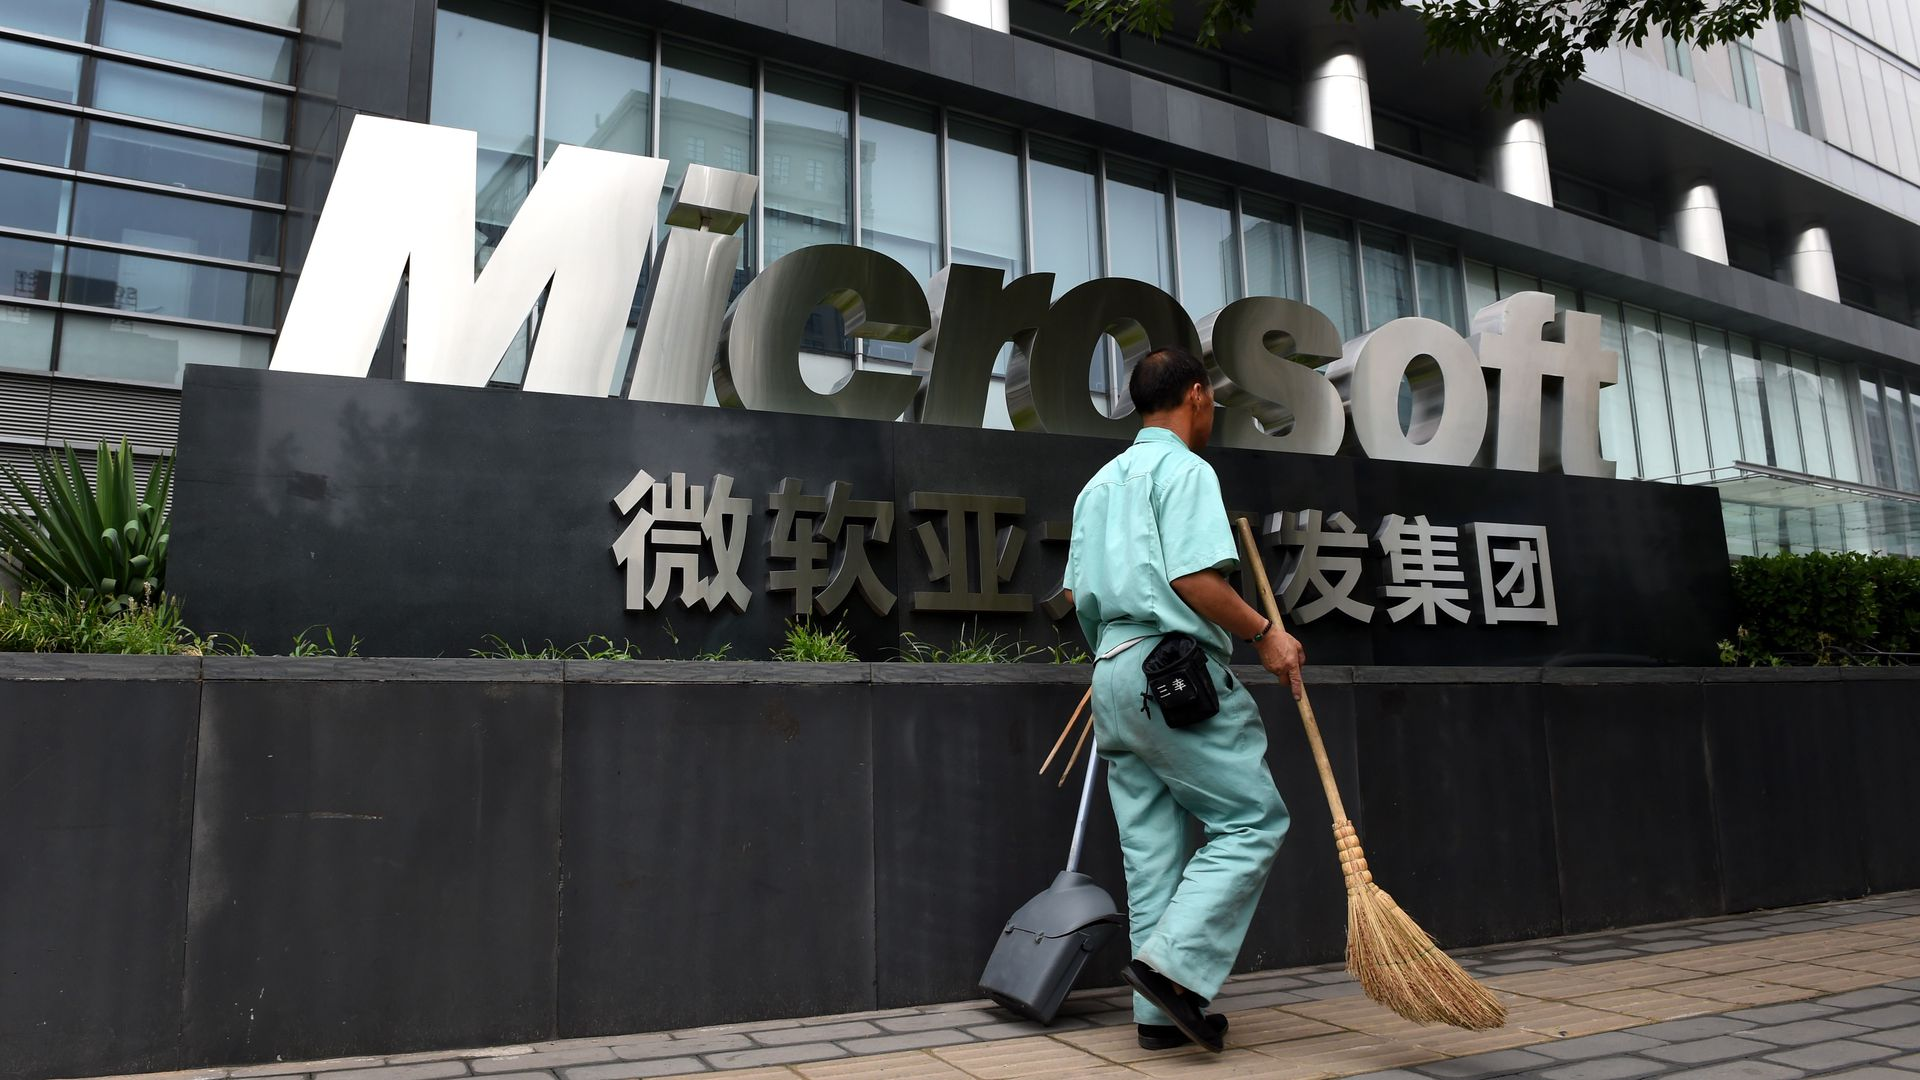 A Microsoft office building in Beijing. Greg Baker / Getty